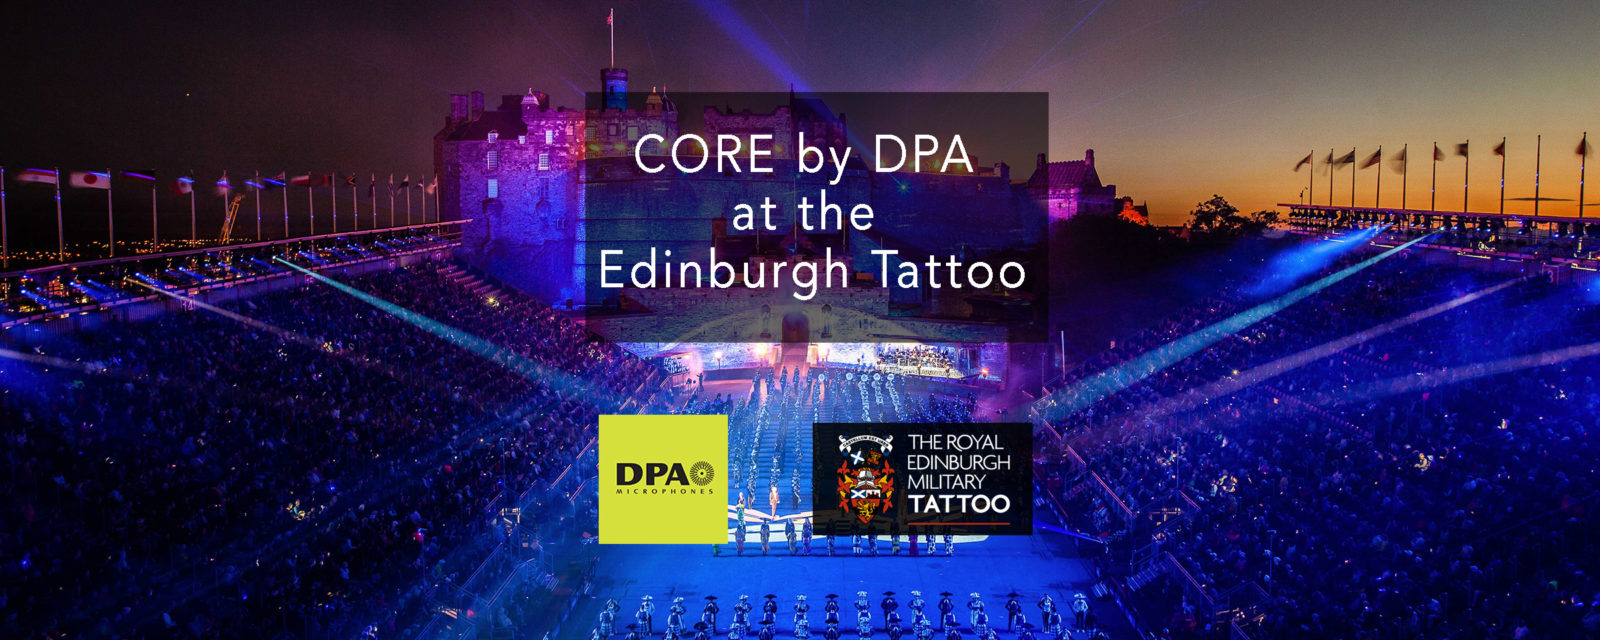 Core by DPA at the Edinburgh Tattoo